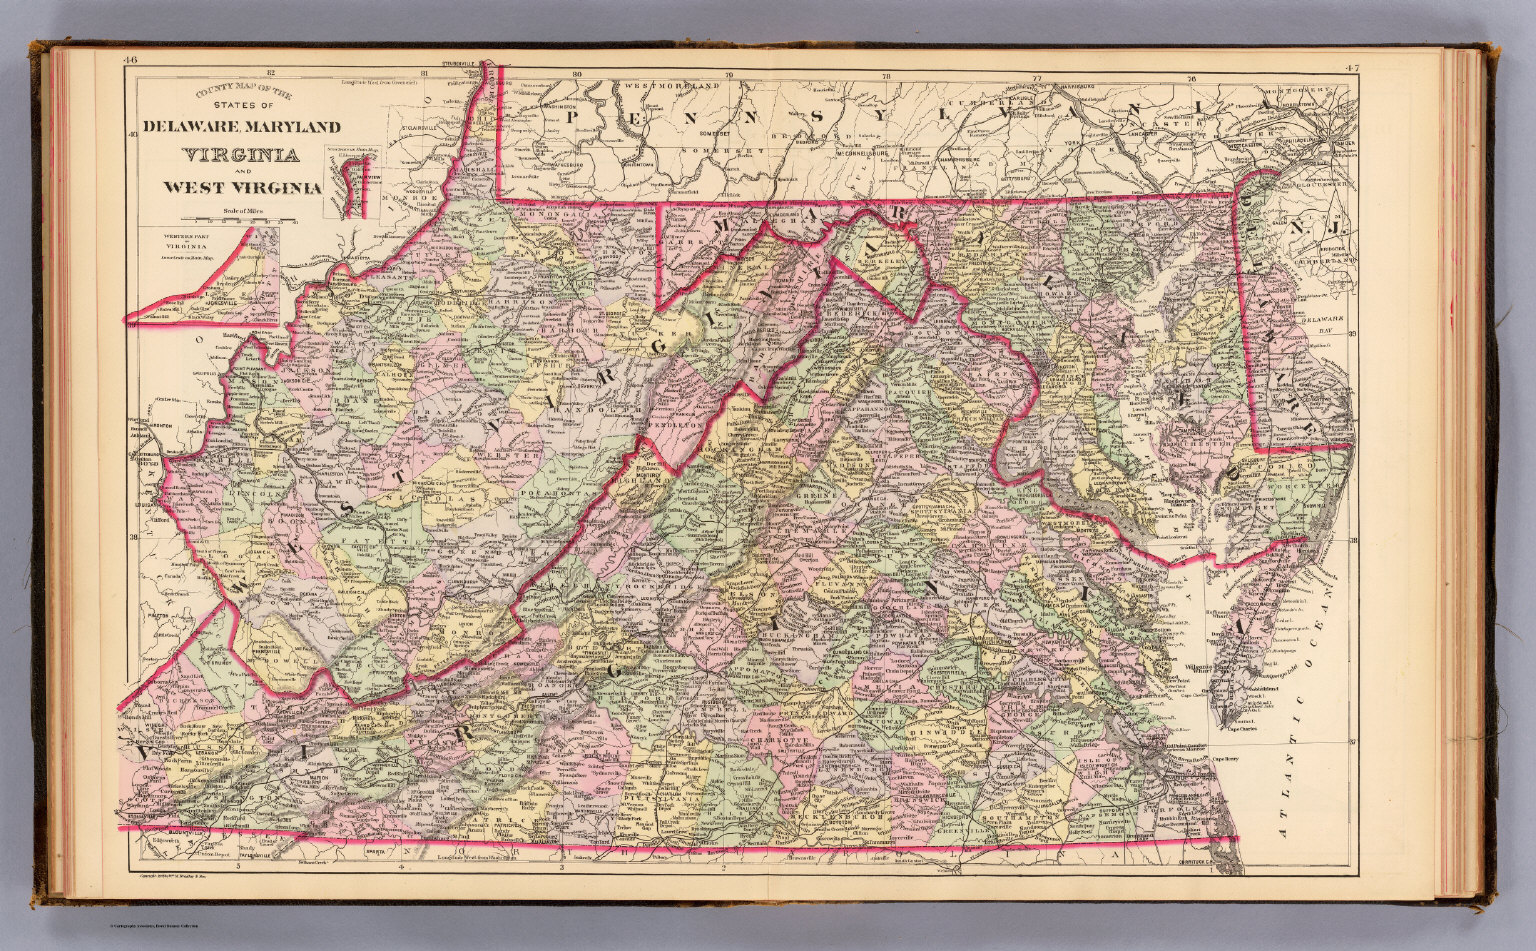 Del Md Va W Va David Rumsey Historical Map Collection - W virginia map